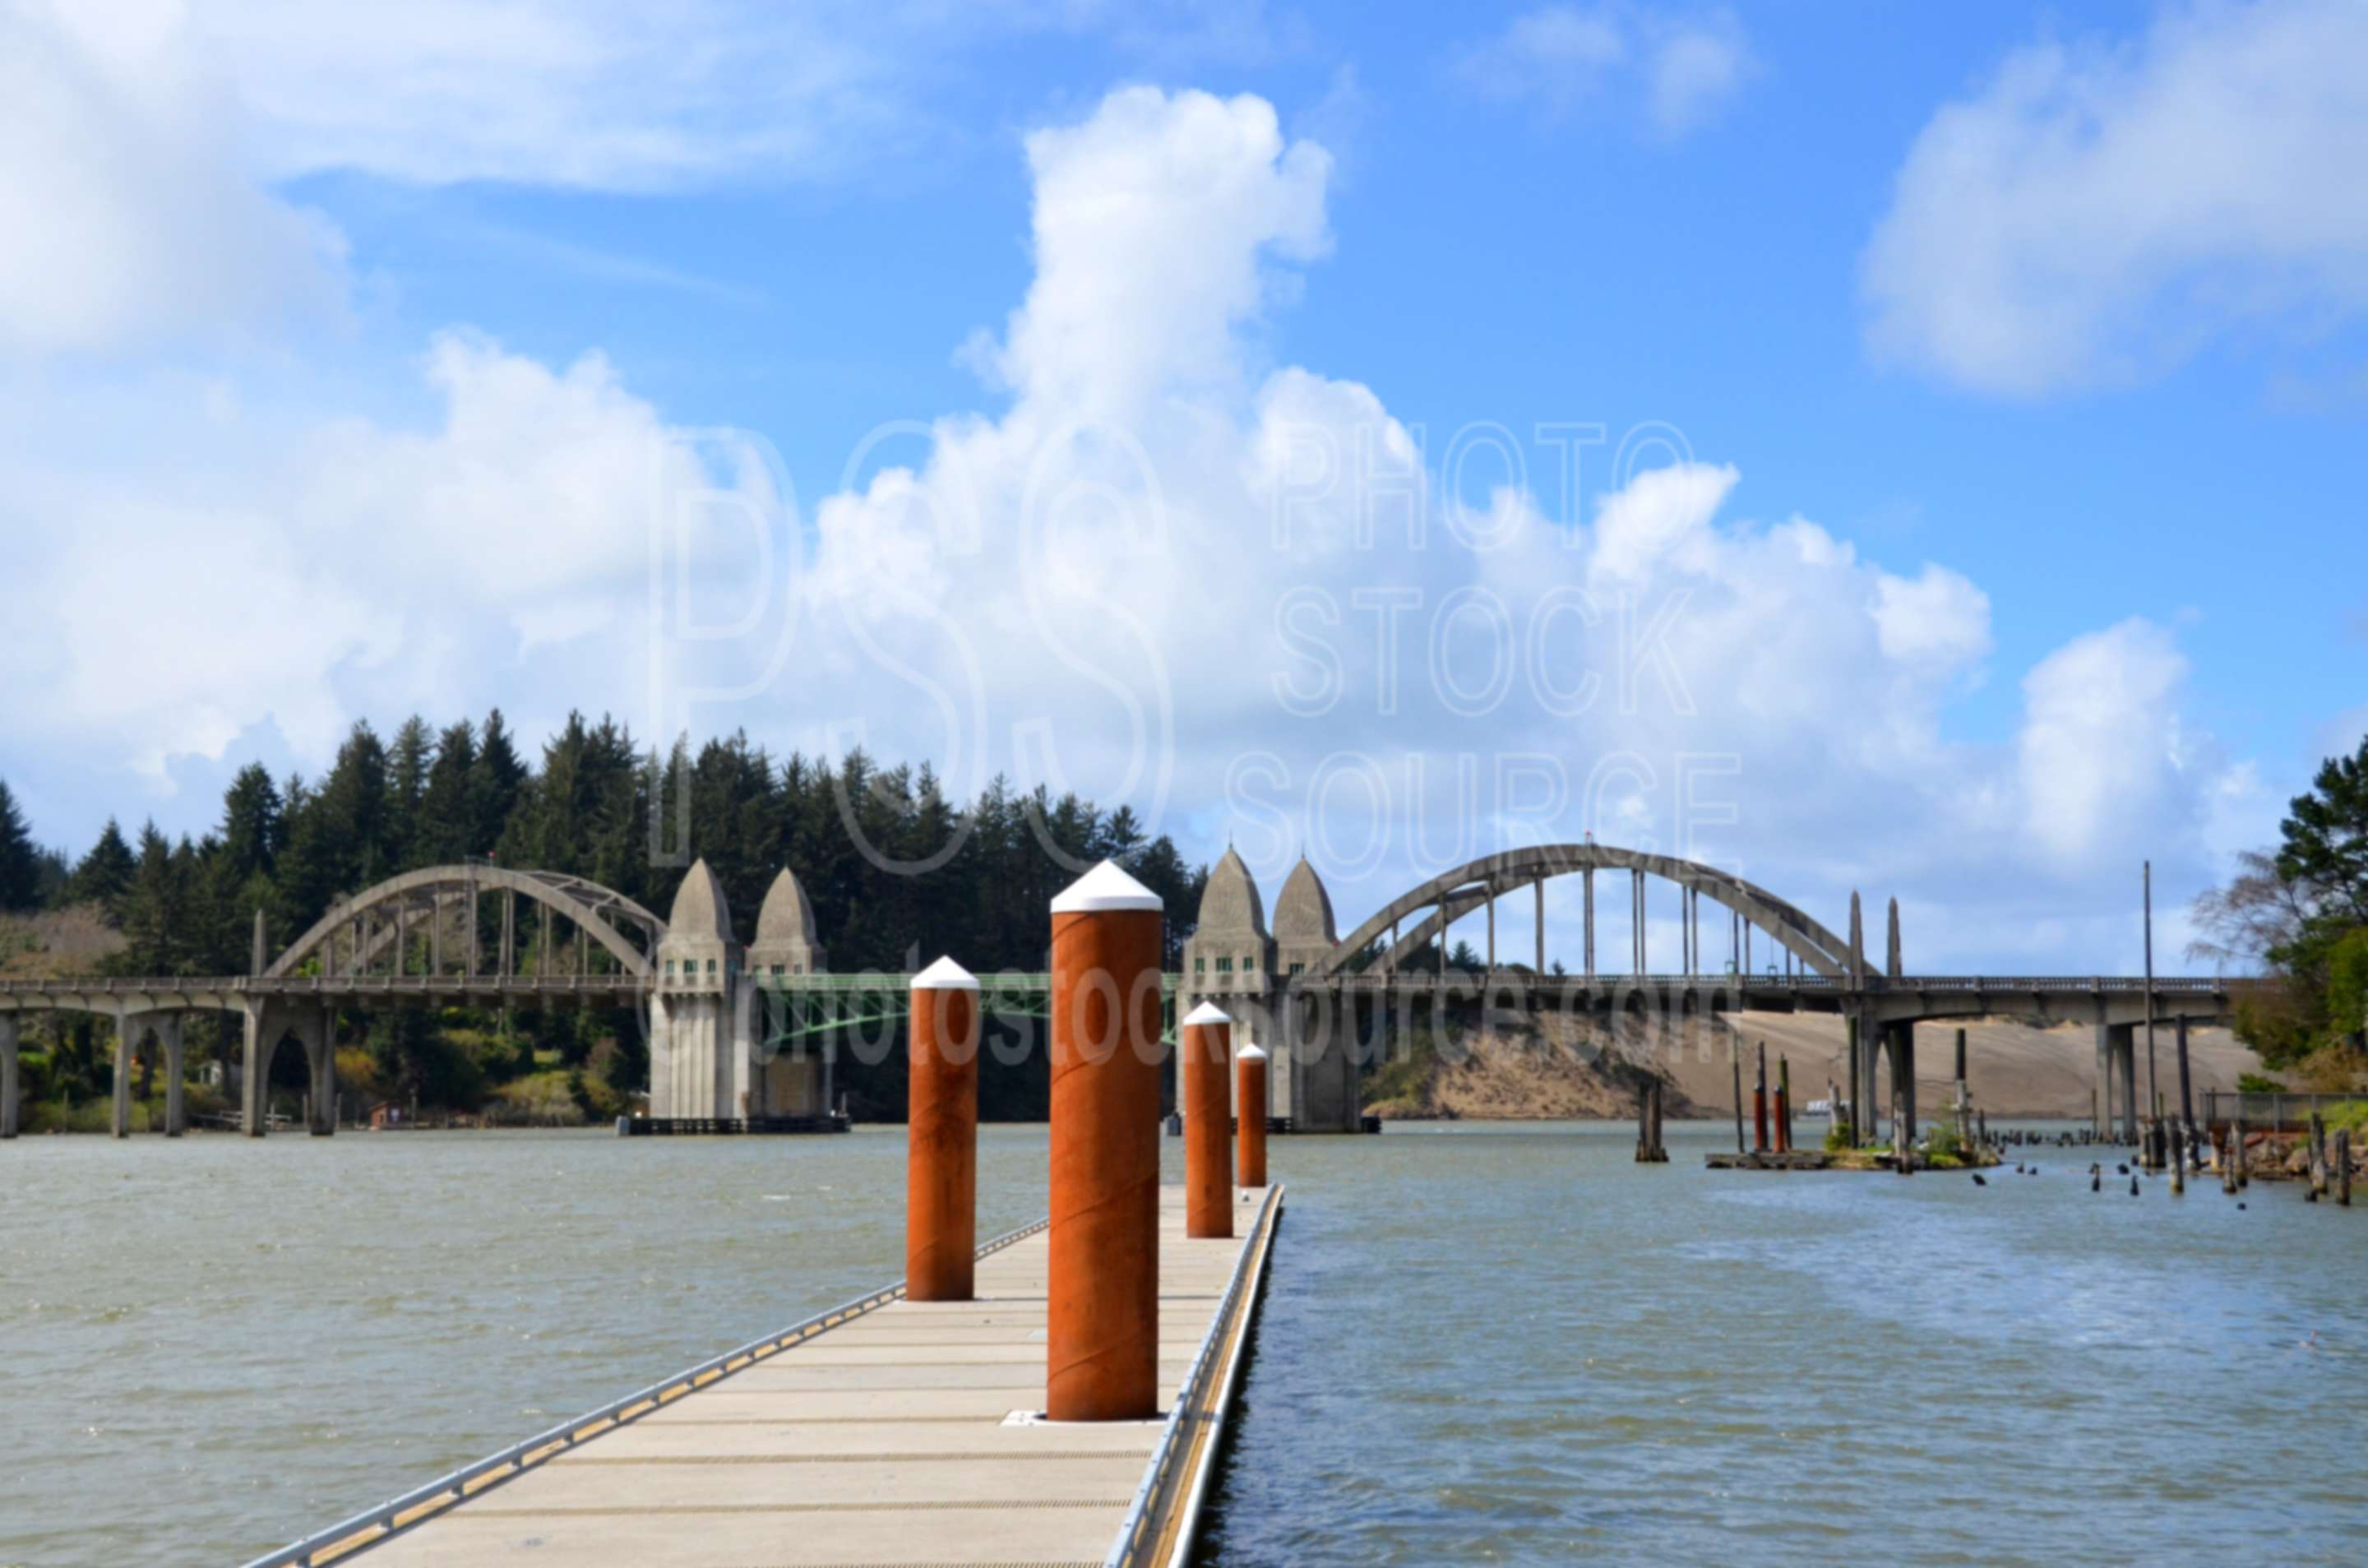 Siuslaw River Bridge,bridge,siuslaw,river,harbor,dock